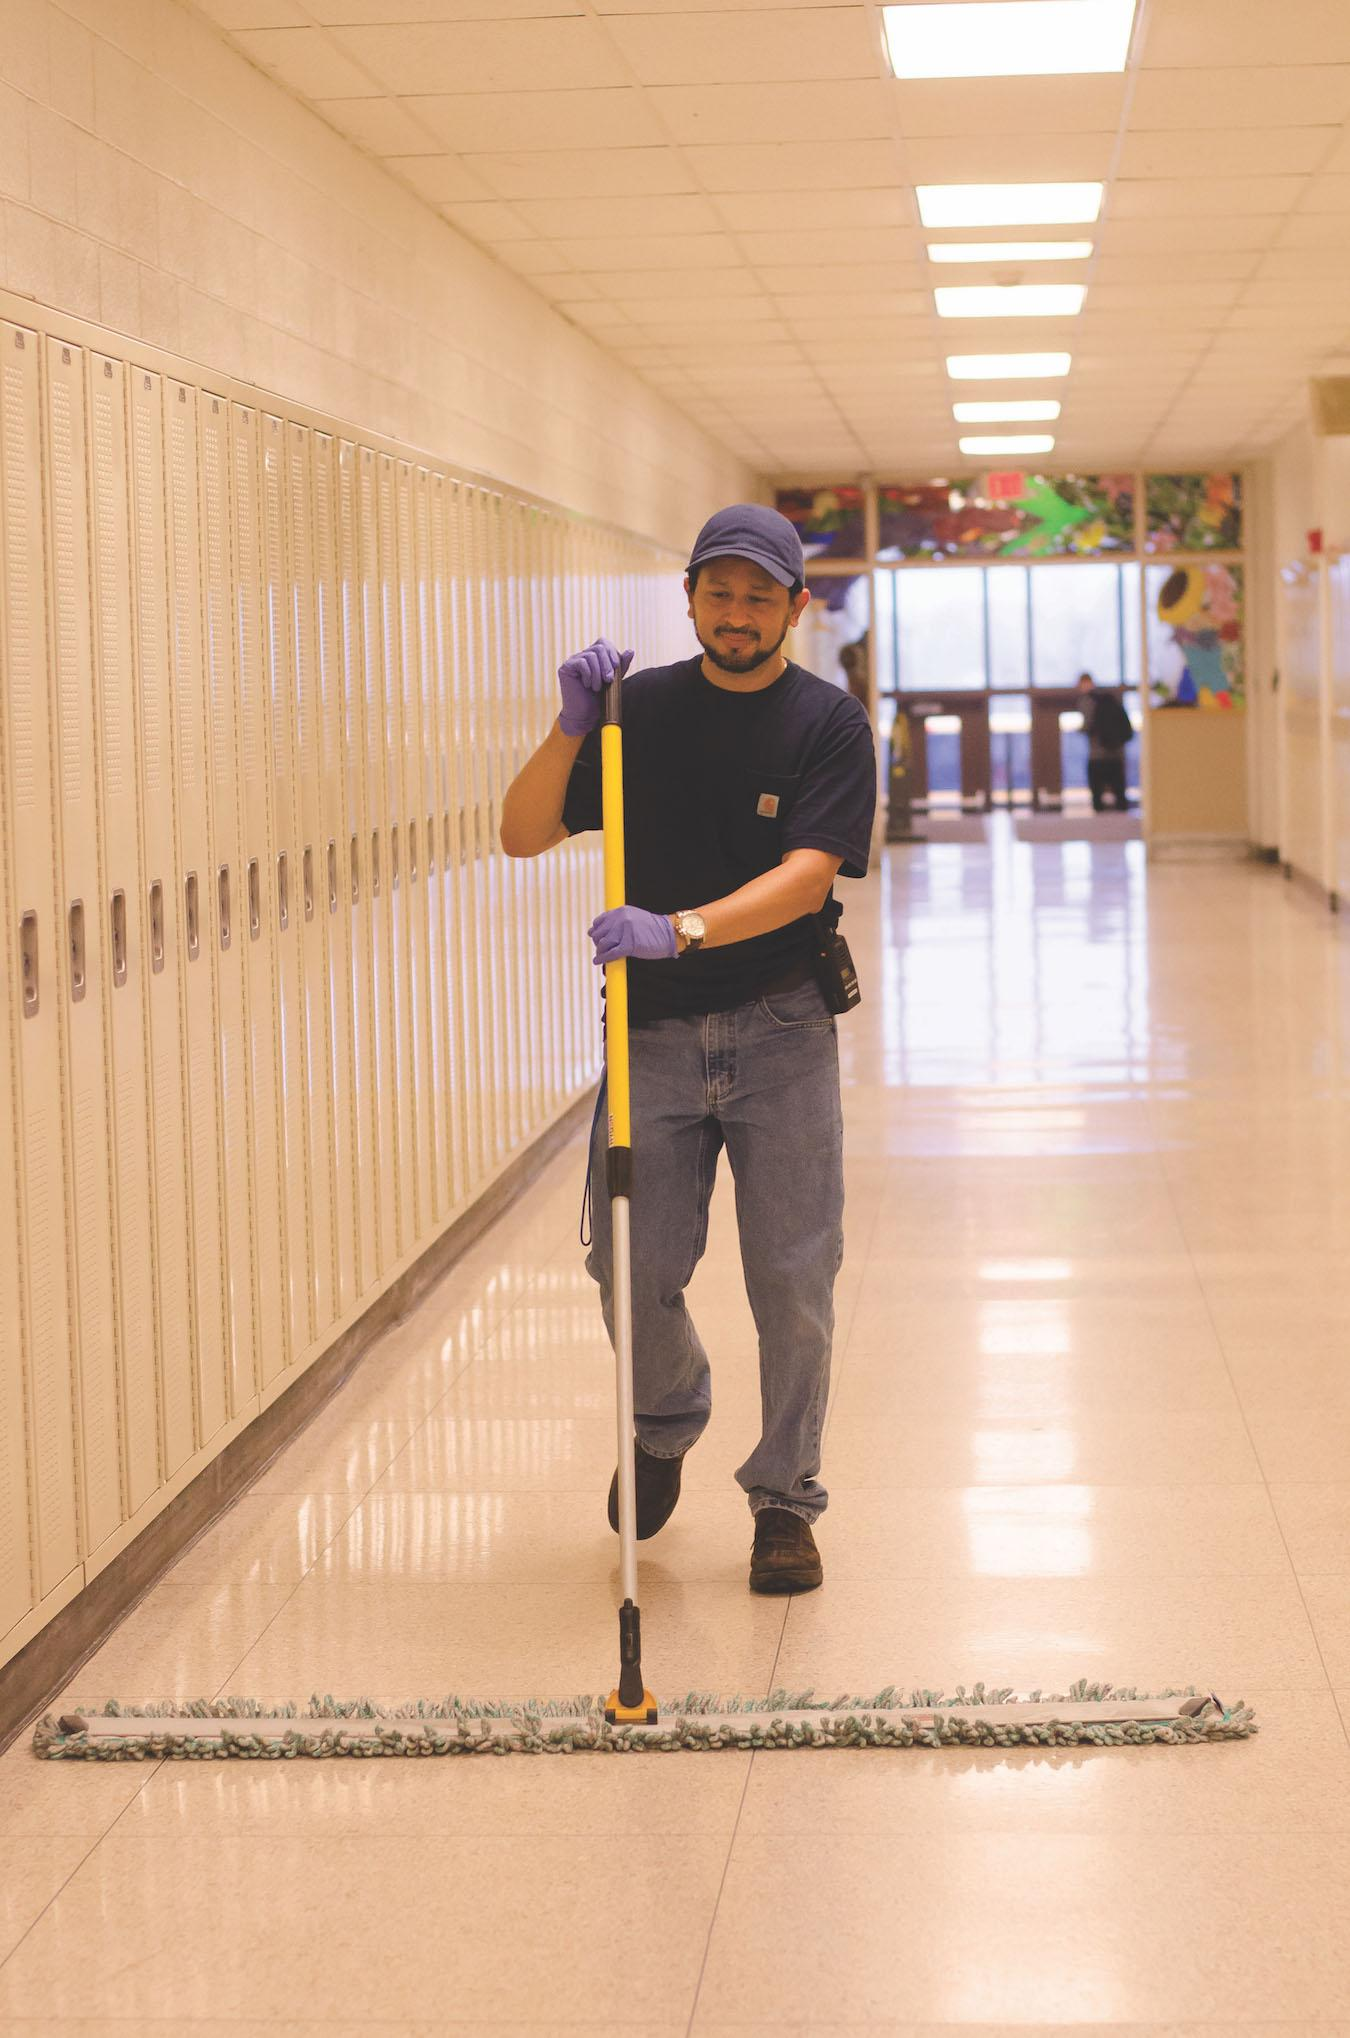 Carlos mopping the art hallway. Photo by Sarah Longmire